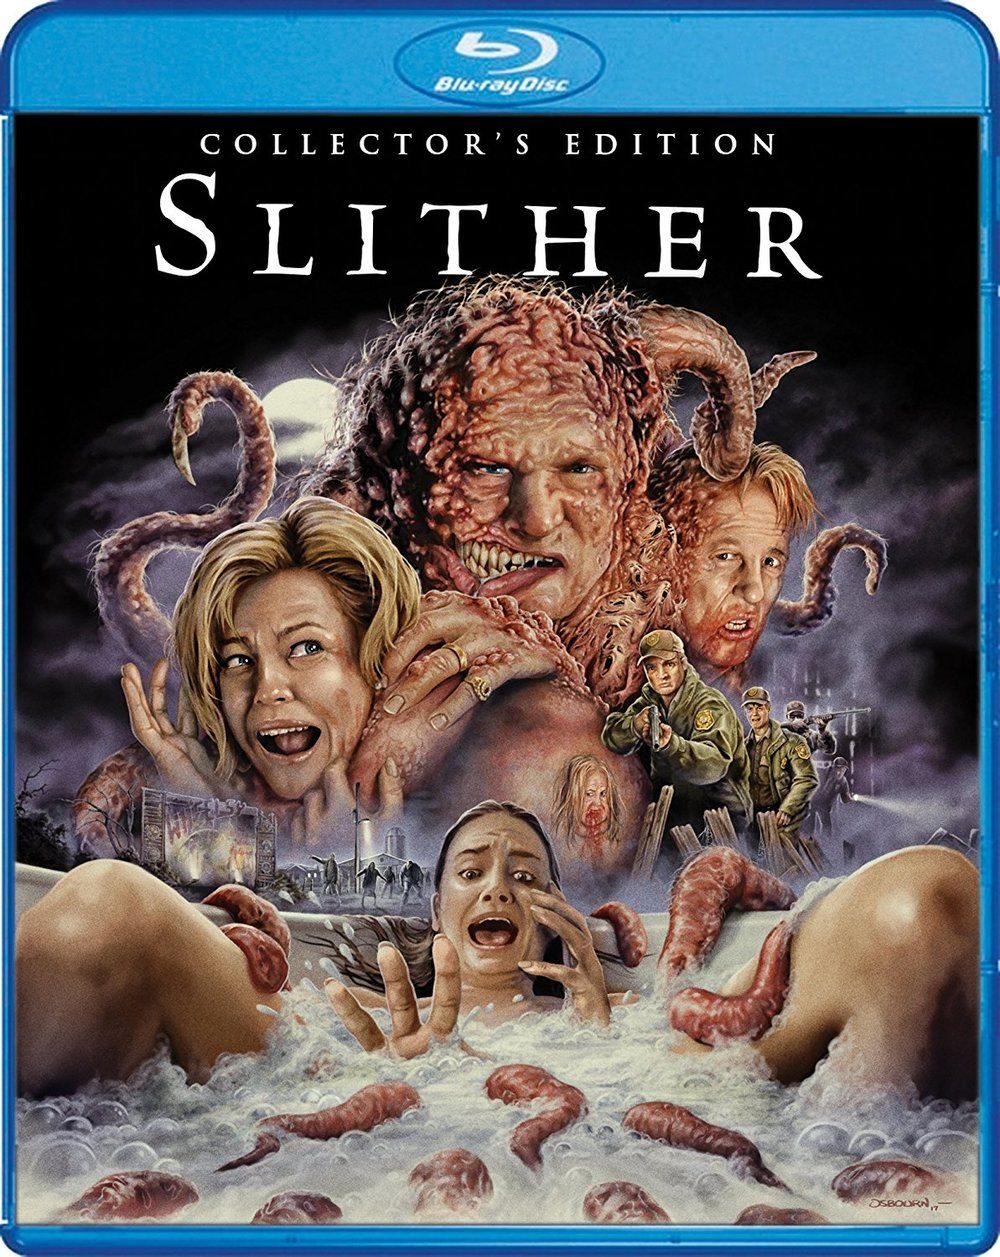 james-gunns-insane-gorefest-horror-film-slither-is-coming-to-blu-ray3